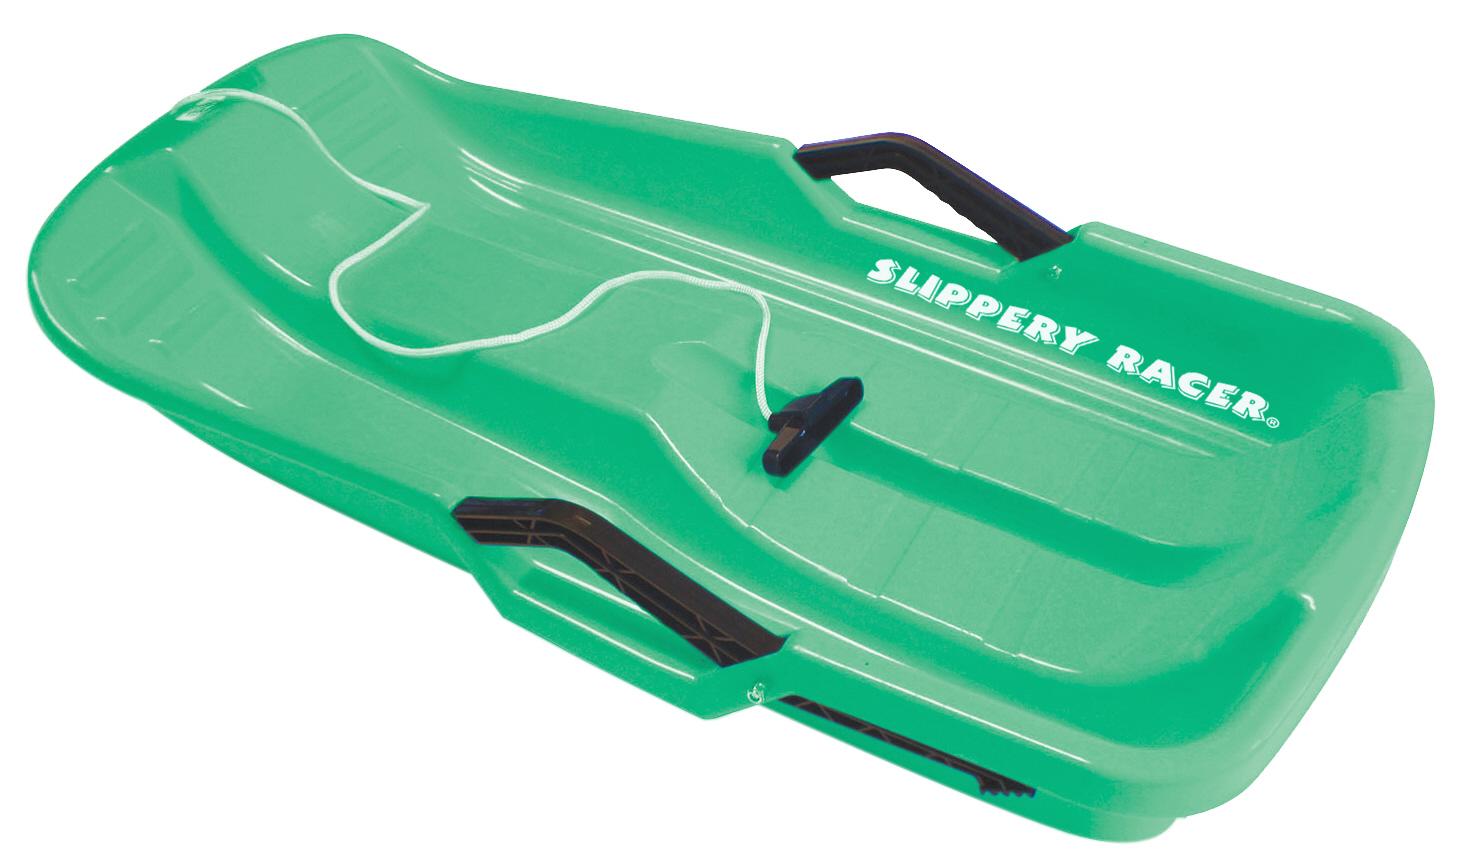 Slippery Racer Downhill Thunder Kids Snow Sled by Slippery Racer